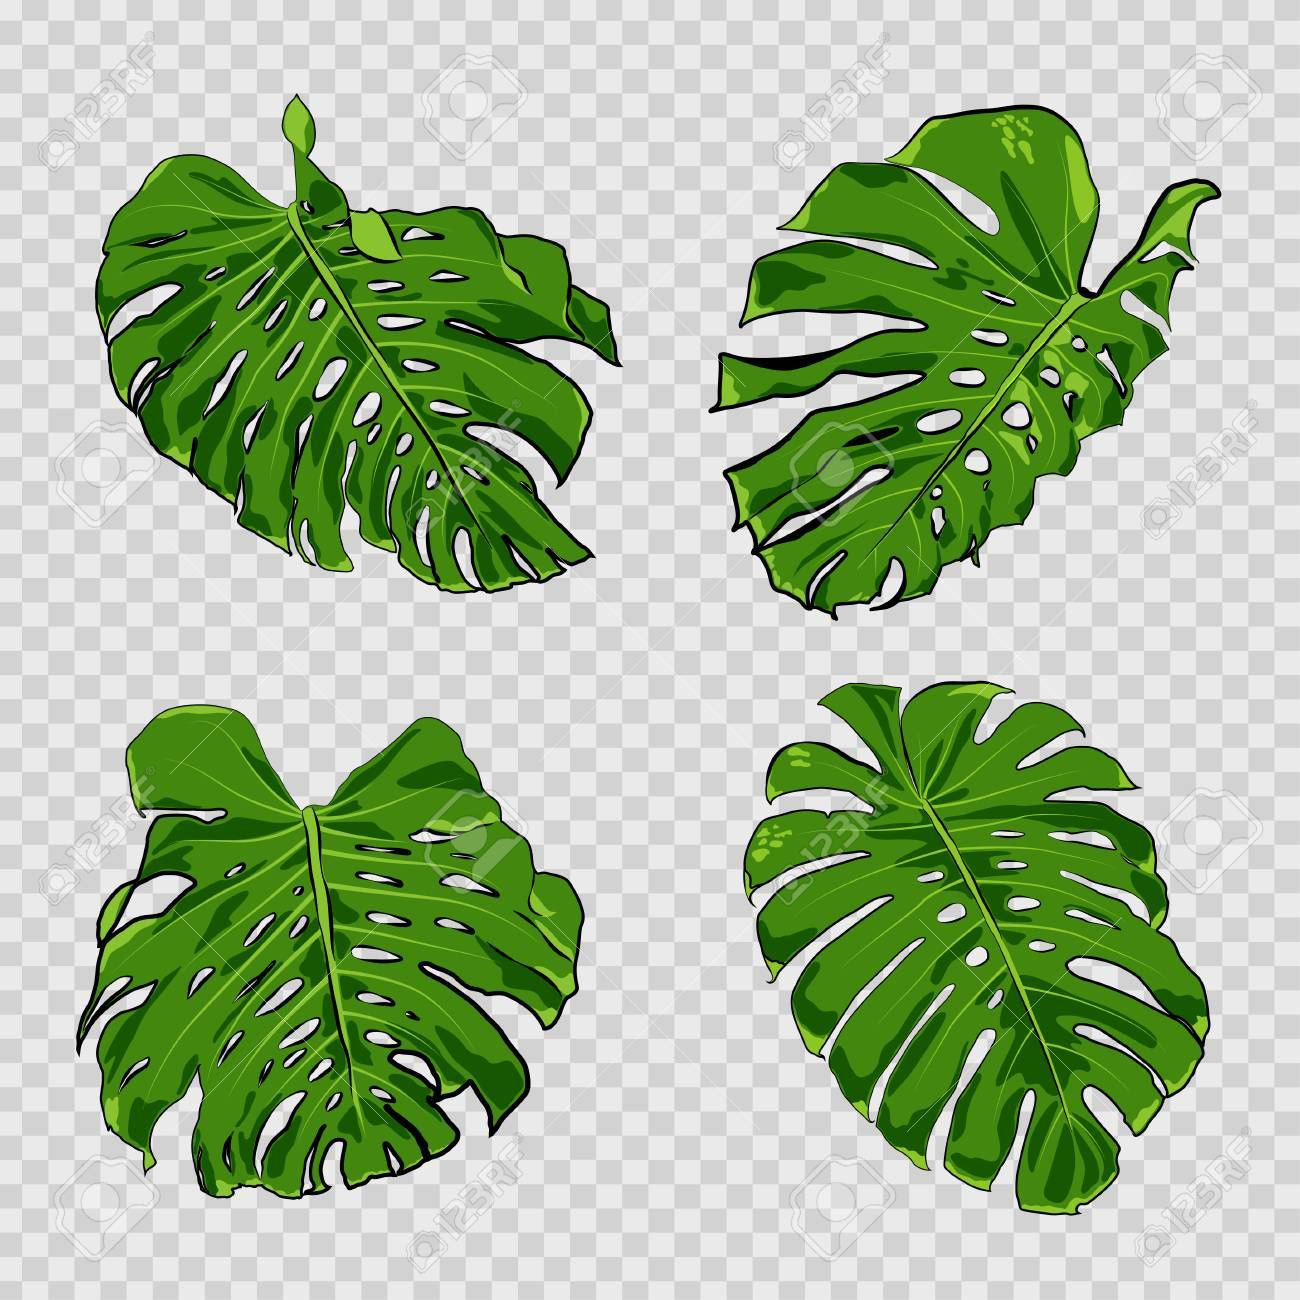 Vector Tropical Palm Leaves Jungle Leaves Set Isolated On Transparent Royalty Free Cliparts Vectors And Stock Illustration Image 85565674 Vector illustration of realistic tropical shadow overlay effect. vector tropical palm leaves jungle leaves set isolated on transparent